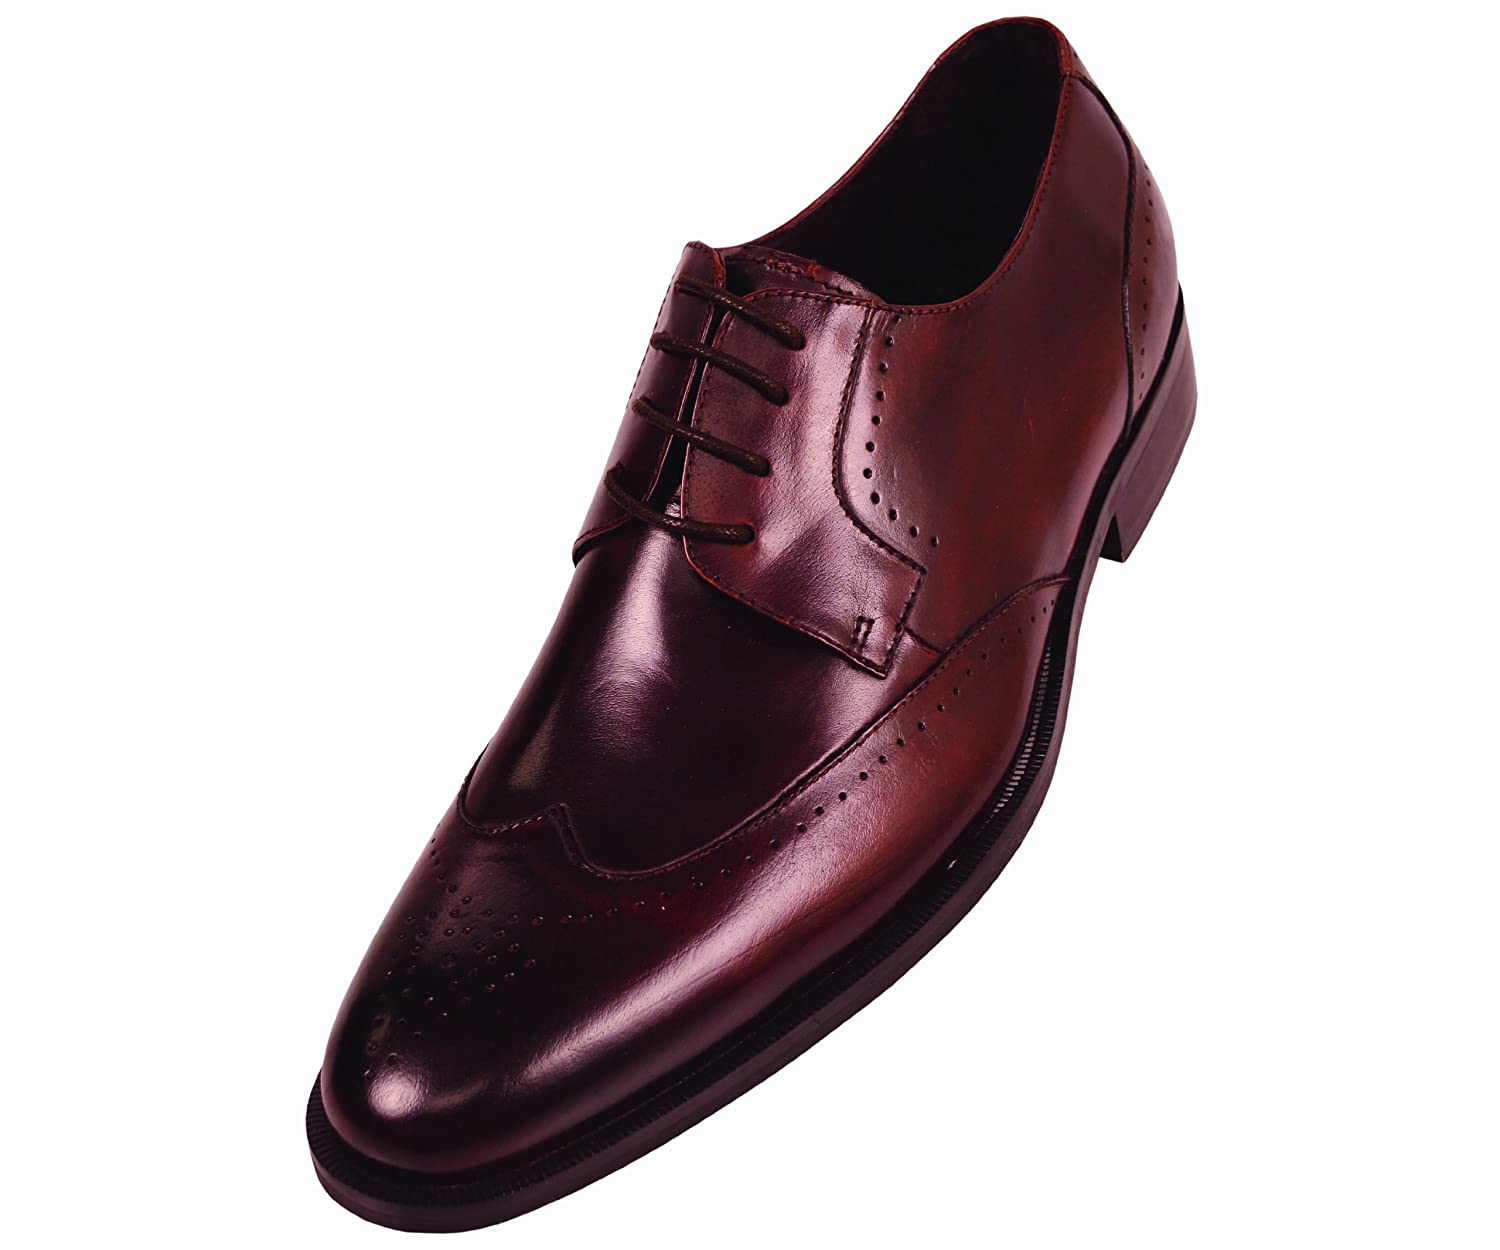 Steven Land Footwear Collection Mens Brown Classic Wingtip Style with Perforation Detailing on Toe Genuine Leather Oxford Dress Shoe: Style SL7184 Brown-065 цены онлайн